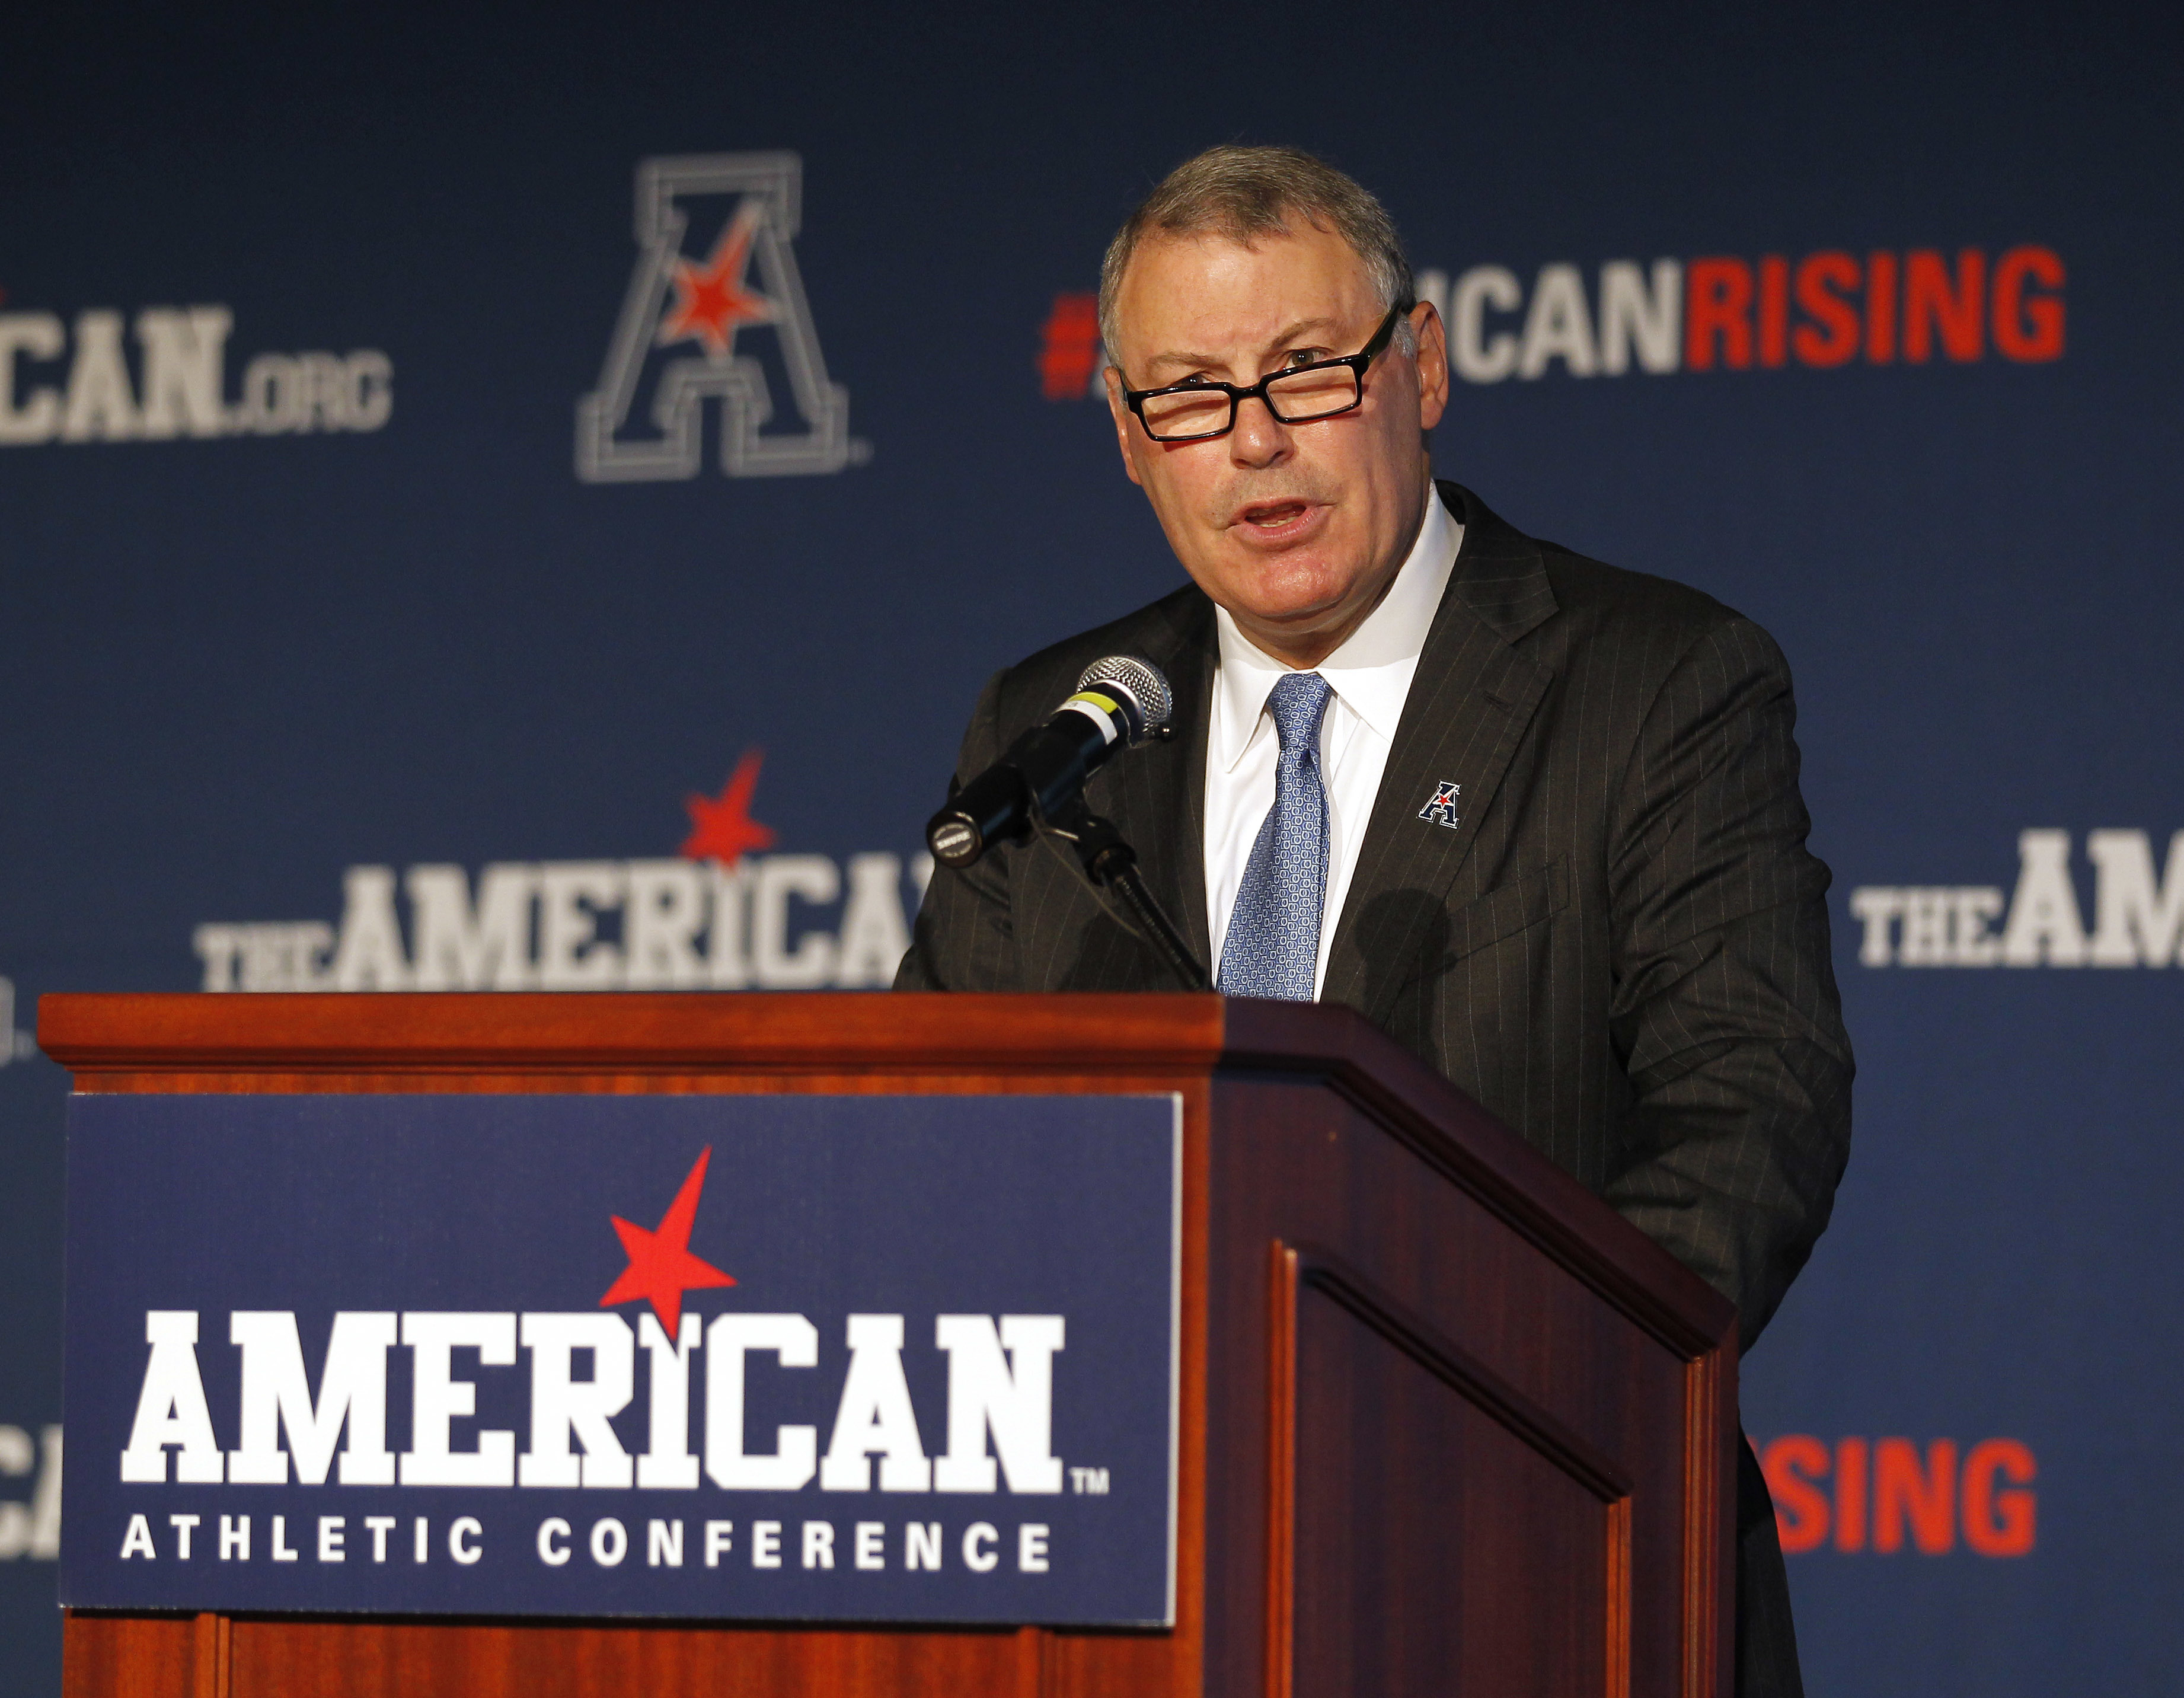 FILE - In this Aug. 4, 2015, file photo, American Athletic Conference Commissioner Mike Aresco addresses the media during an NCAA football media day in Newport, R.I. The AAC gathers for its media day, but hanging over the start of the season is Big 12 exp